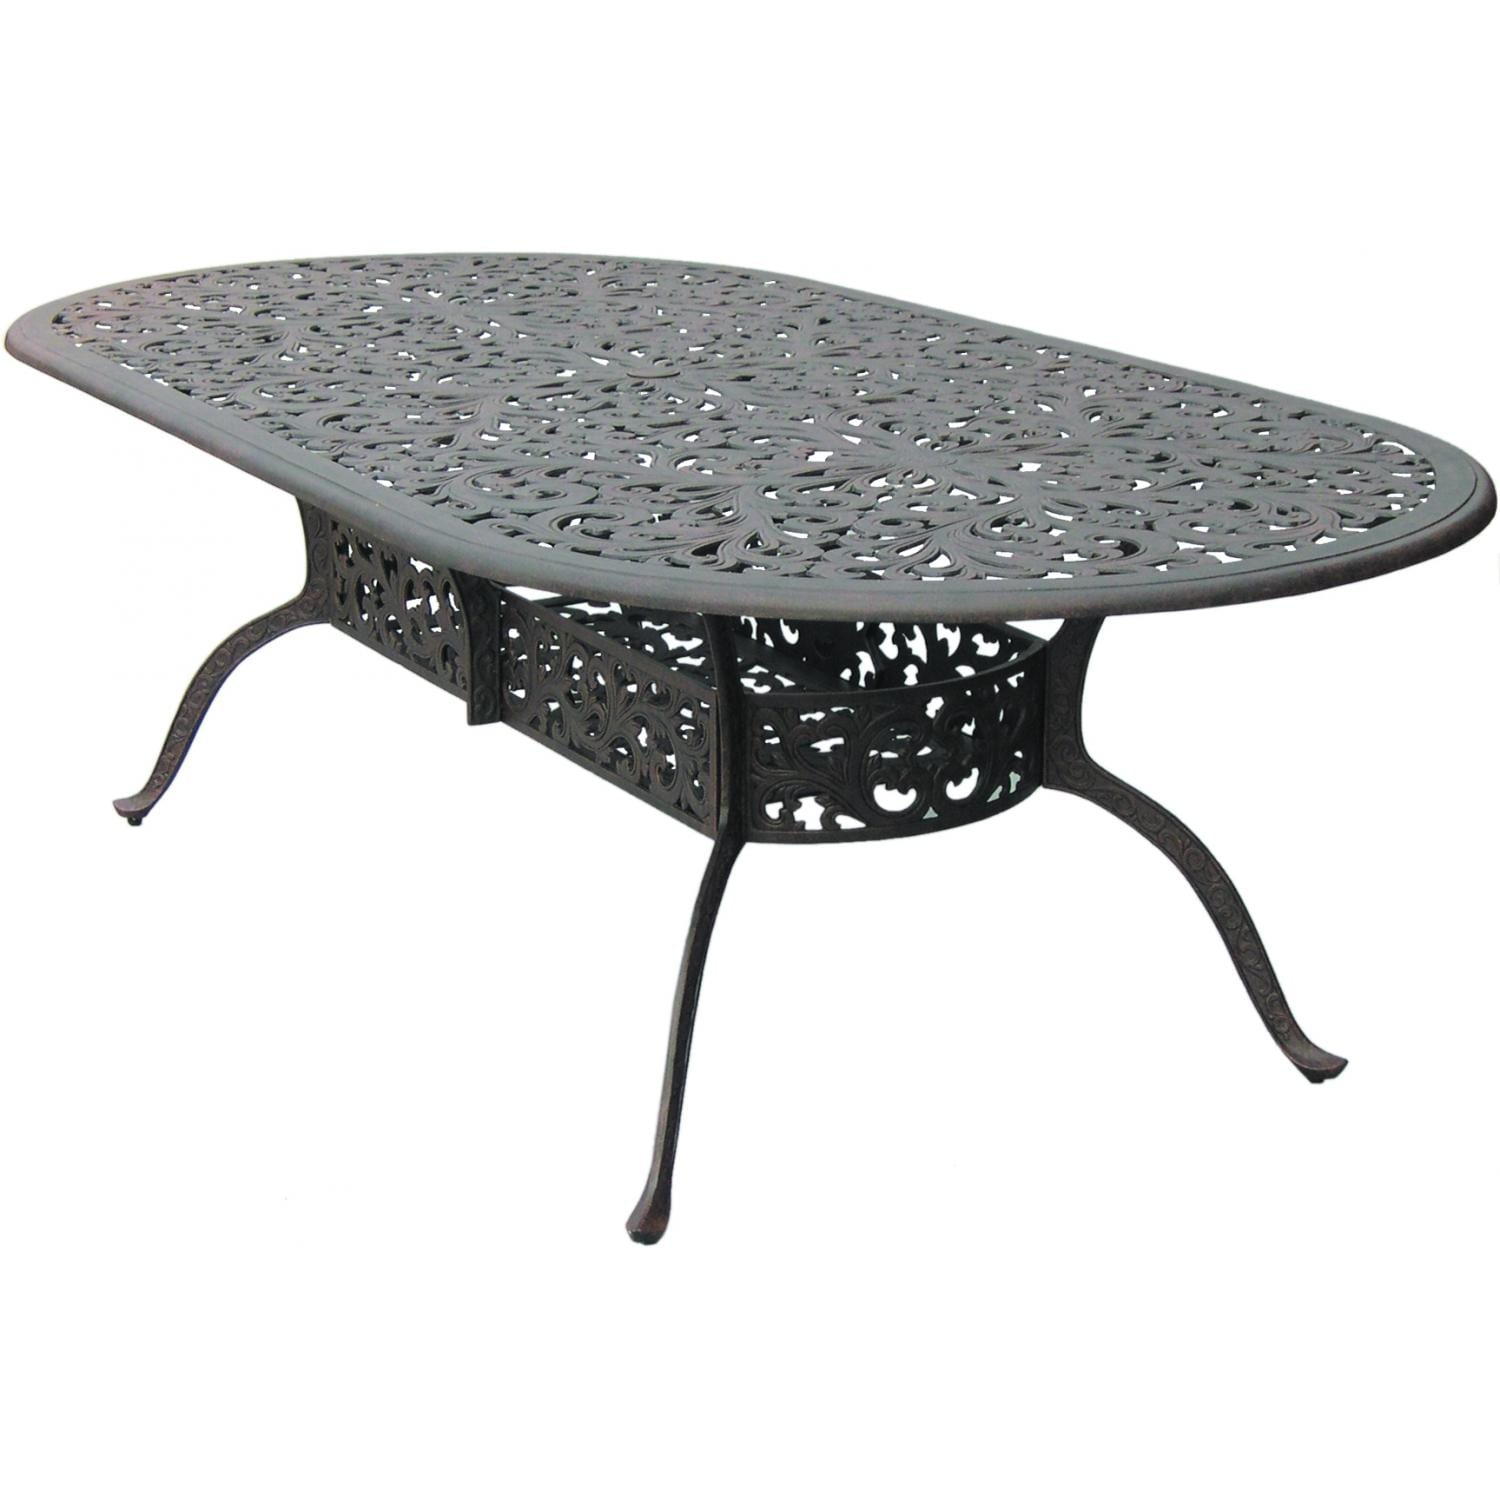 Darlee Series 80 Cast Aluminum Oval Patio Dining Table